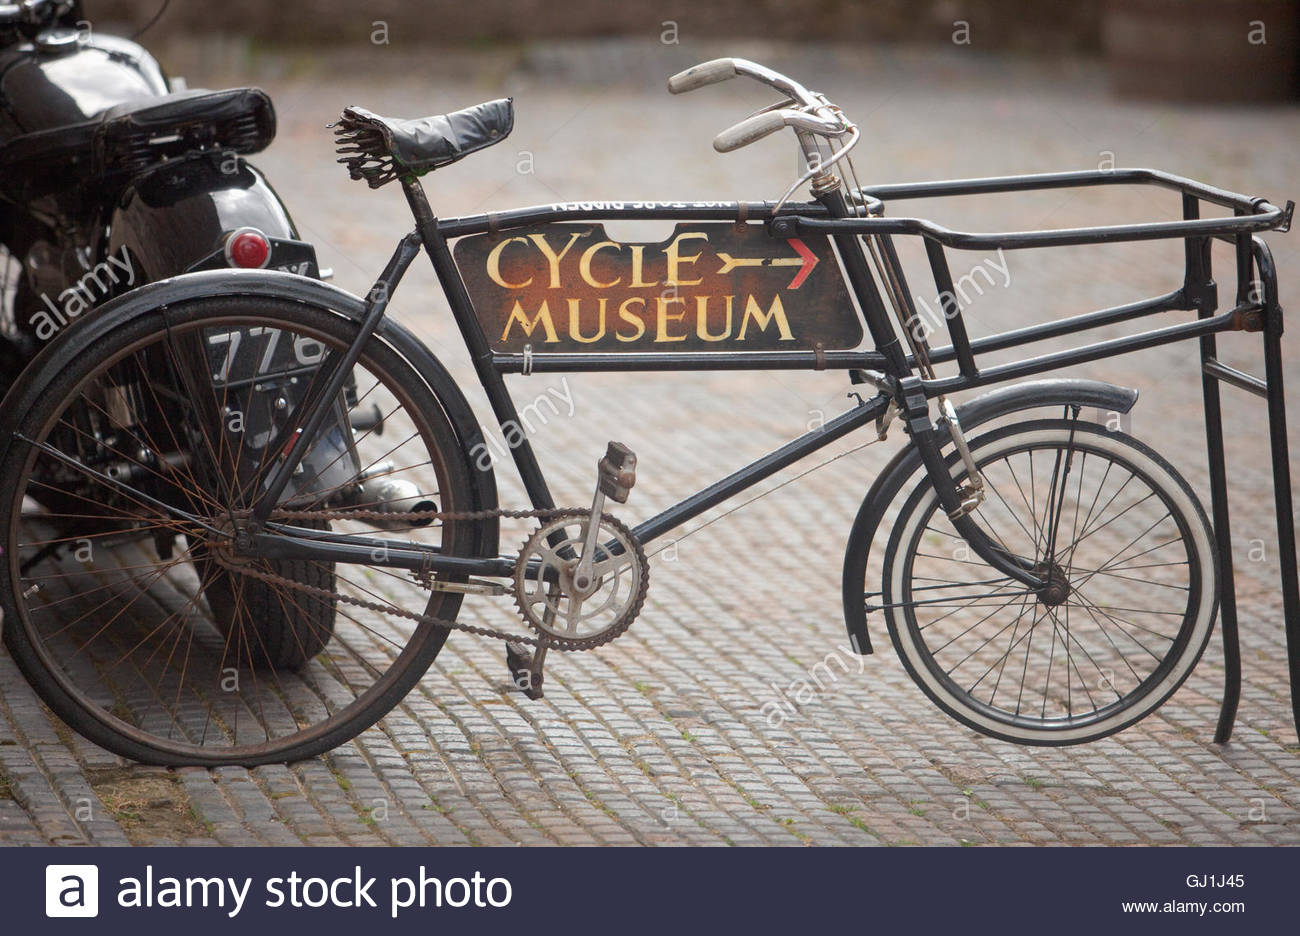 The Scottish Cycle Museum at Drumlanrig Castle, near Thornhill, Dumfries and Galloway, Scotland - Stock Image